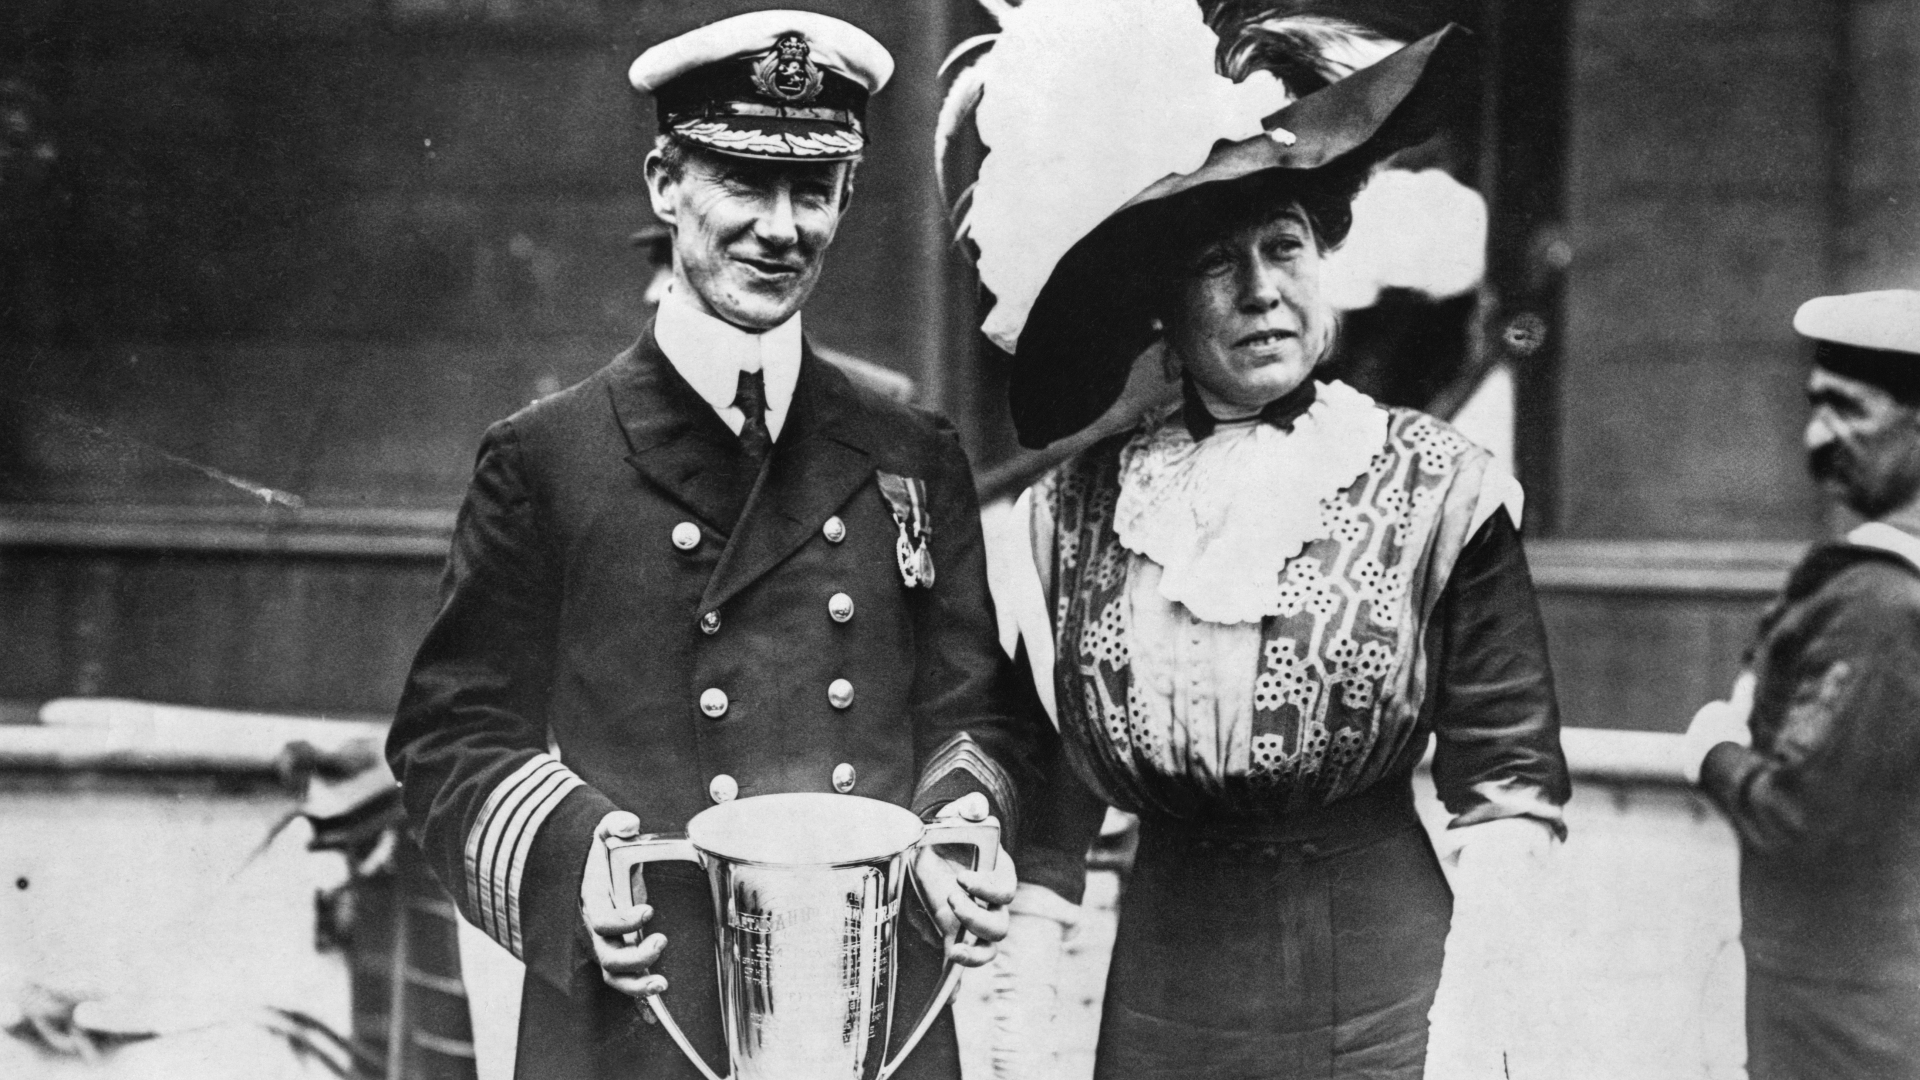 Titanic survivor Margaret Brown alongside Captain Arthur Rostron, of the RMS Carpathia, who was awarded a silver cup for rescuing survivors of the shipwrecked Titanic. (Credit: DeAgostini/Getty Images)